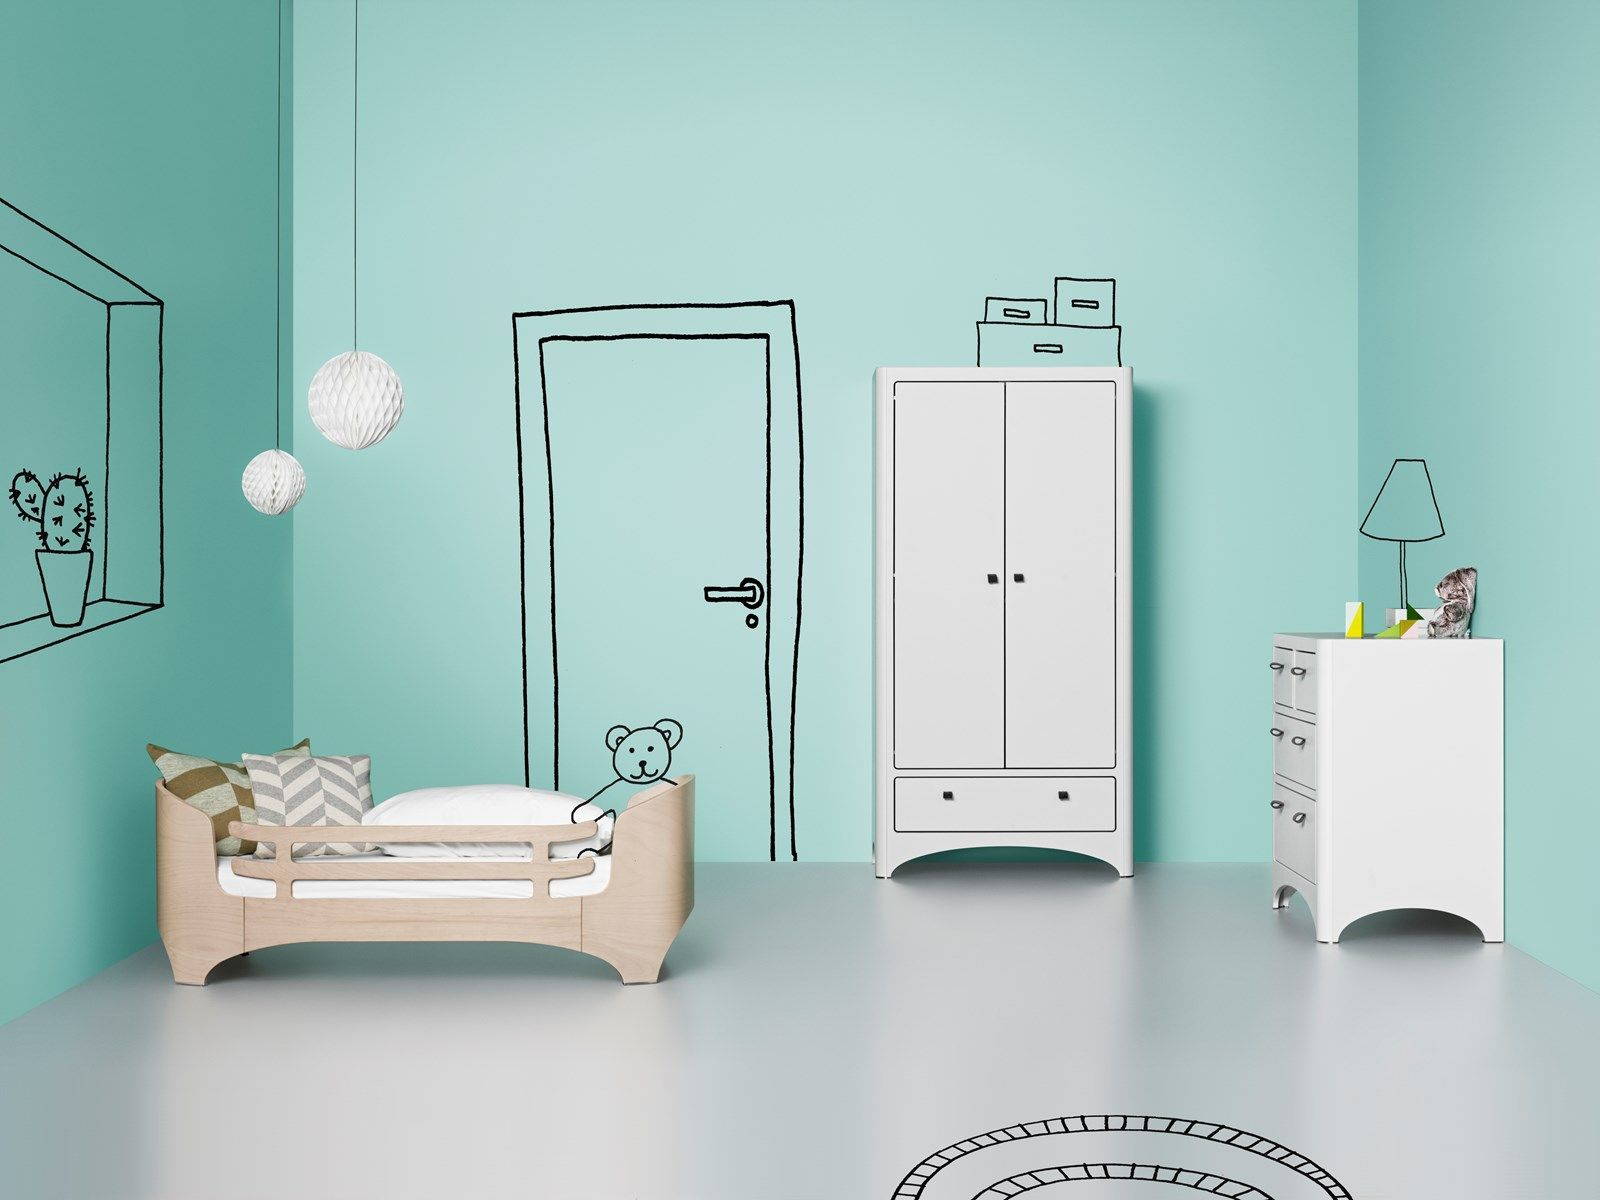 chambre enfant leander lit volutif armoire 2 portes commode leander design scandinave brnevrelset pinterest design and armoires - Chambre Bebe Design Scandinave